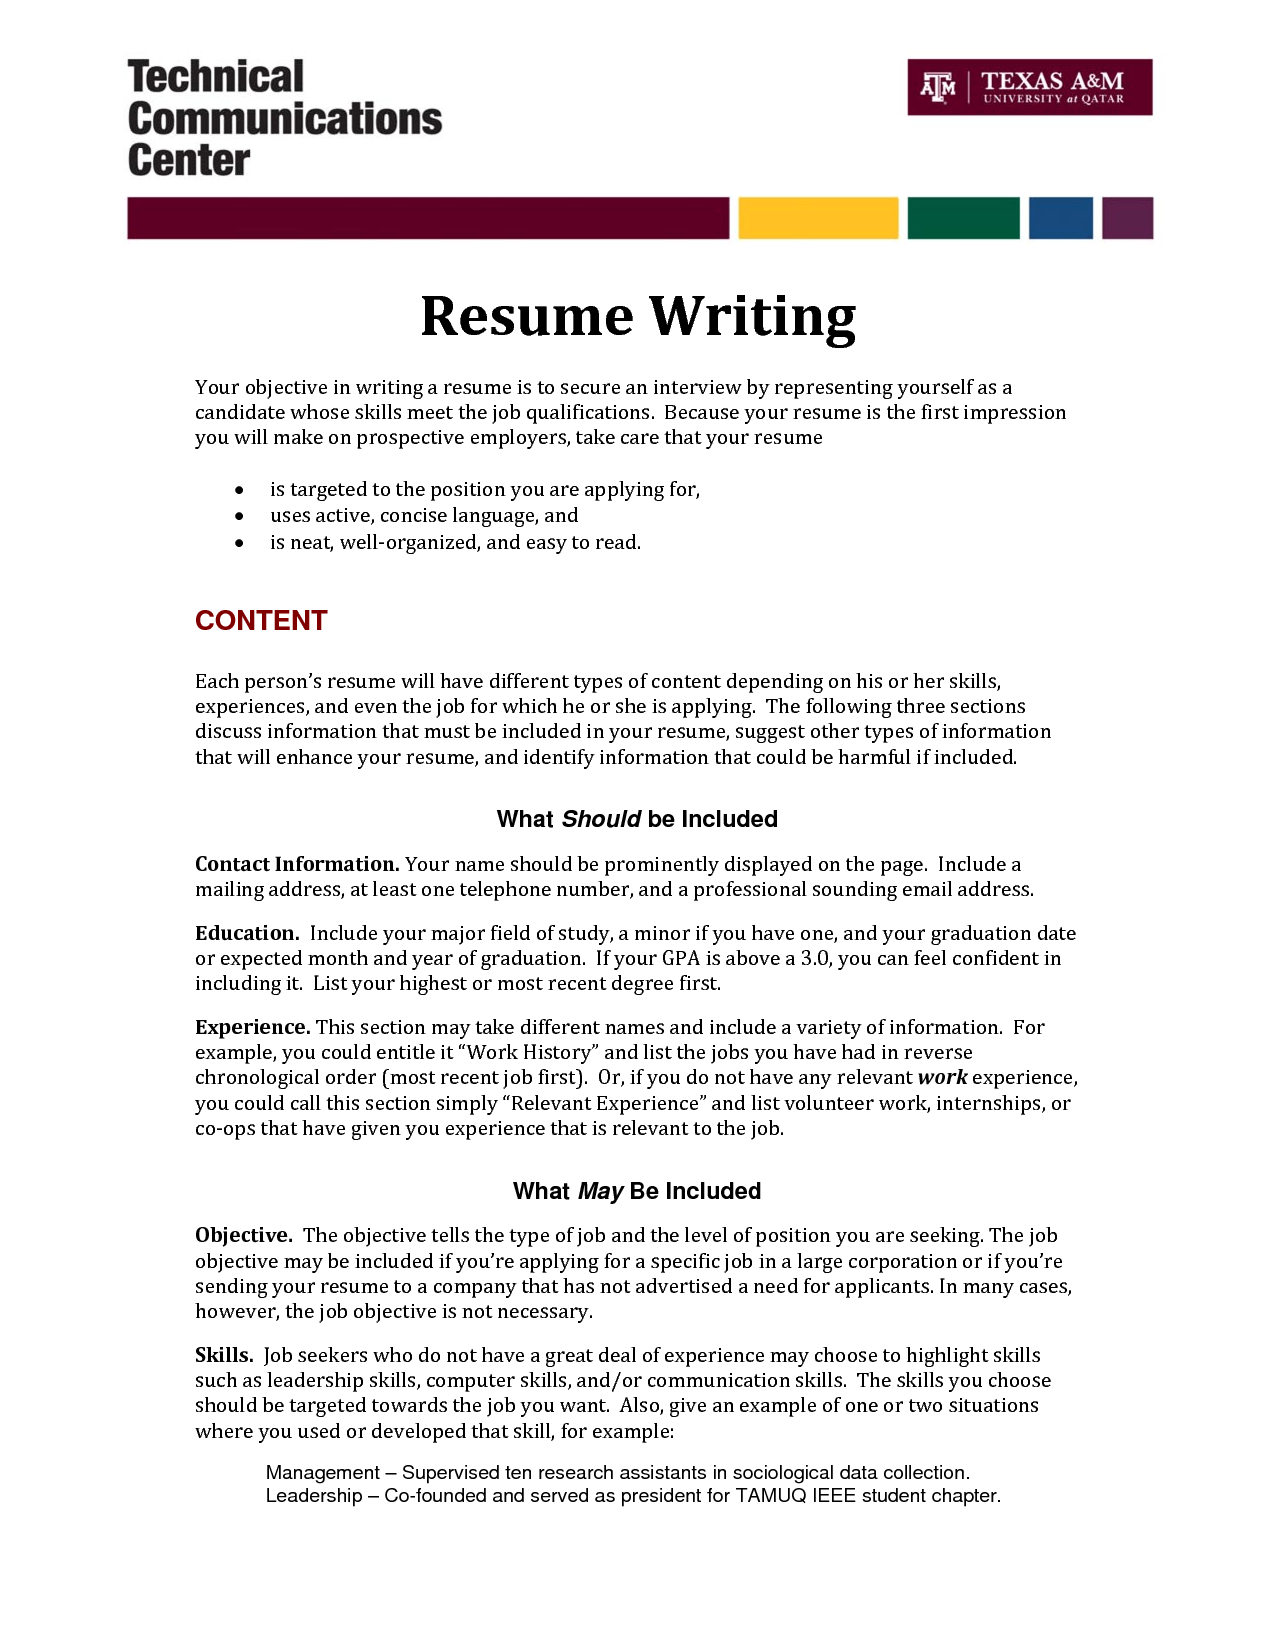 how do you type a resumes